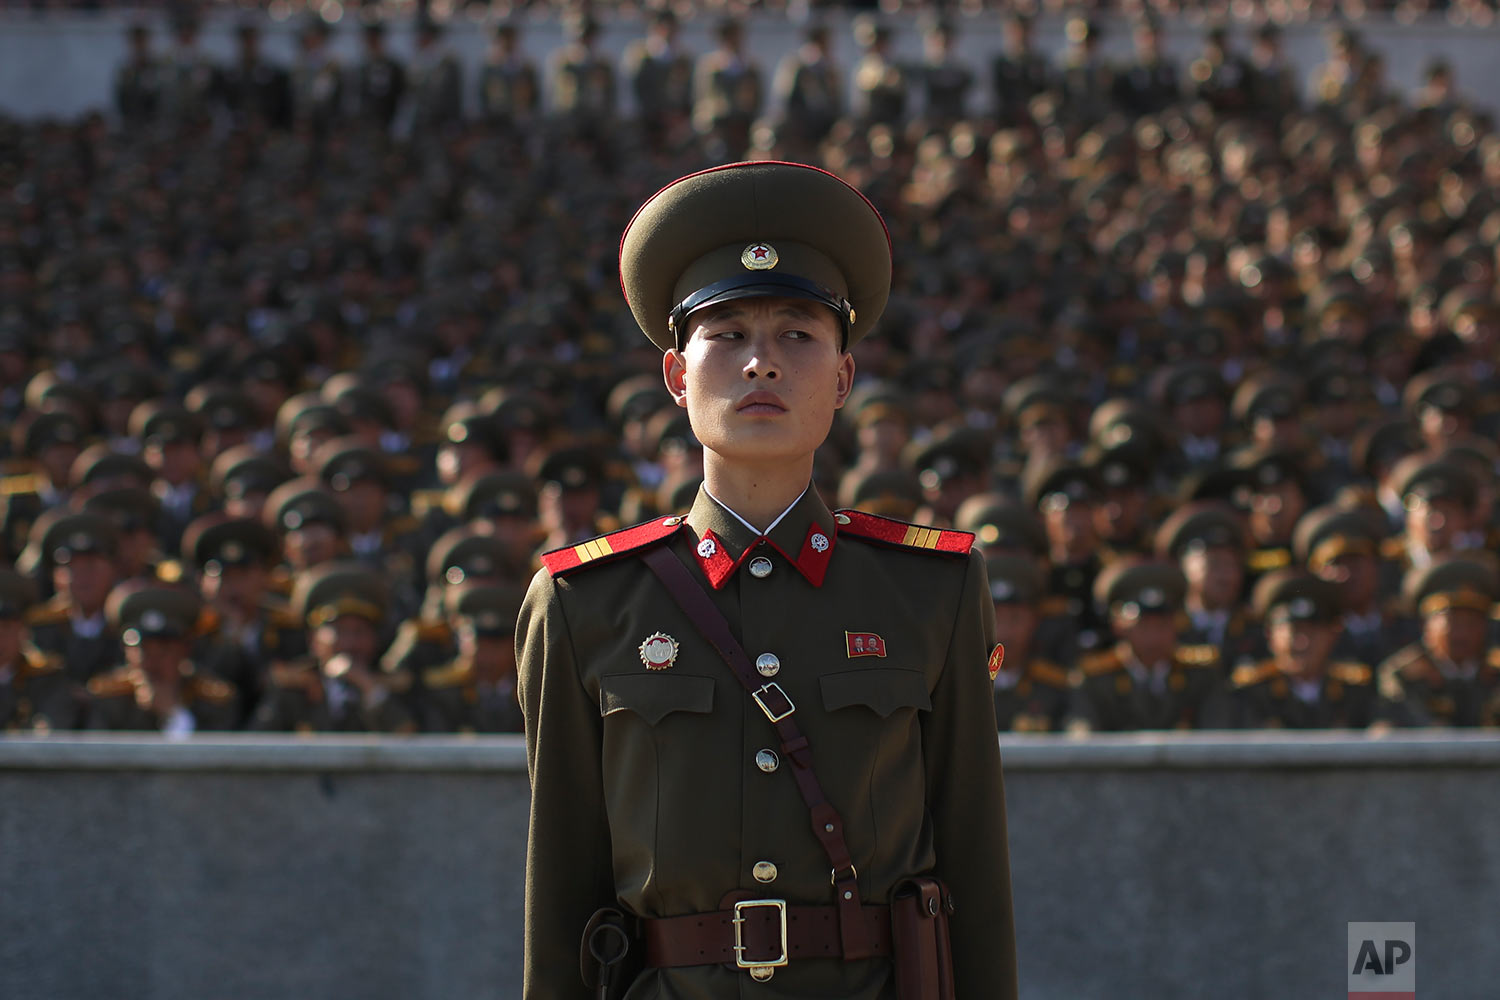 A soldier stands during a parade in Pyongyang, North Korea, to mark the 70th anniversary of the founding of North Korea's ruling party on Oct. 10, 2015. (AP Photo/Wong Maye-E)